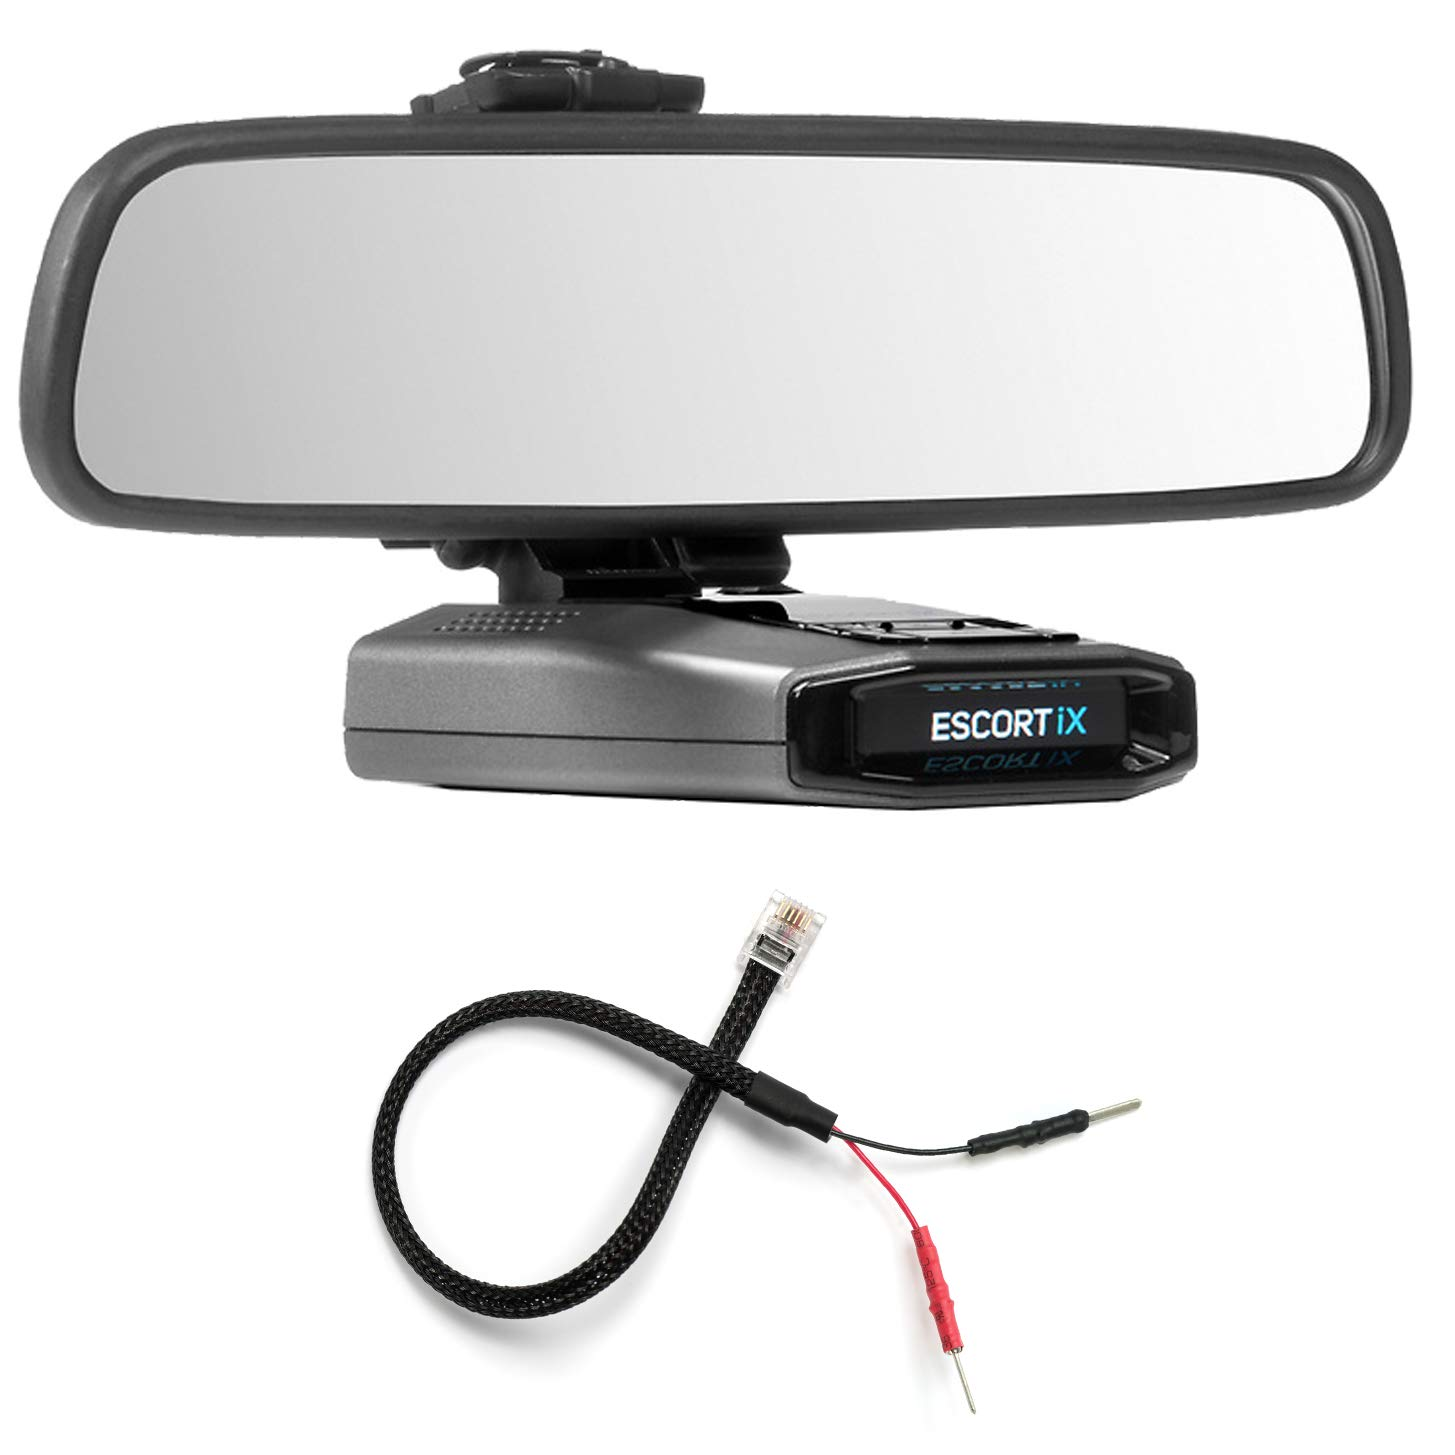 Radar Mount Mirror Mount Bracket + Mirror Wire Power Cord for Escort IX EX Max360C (3001107) by Radar Mount